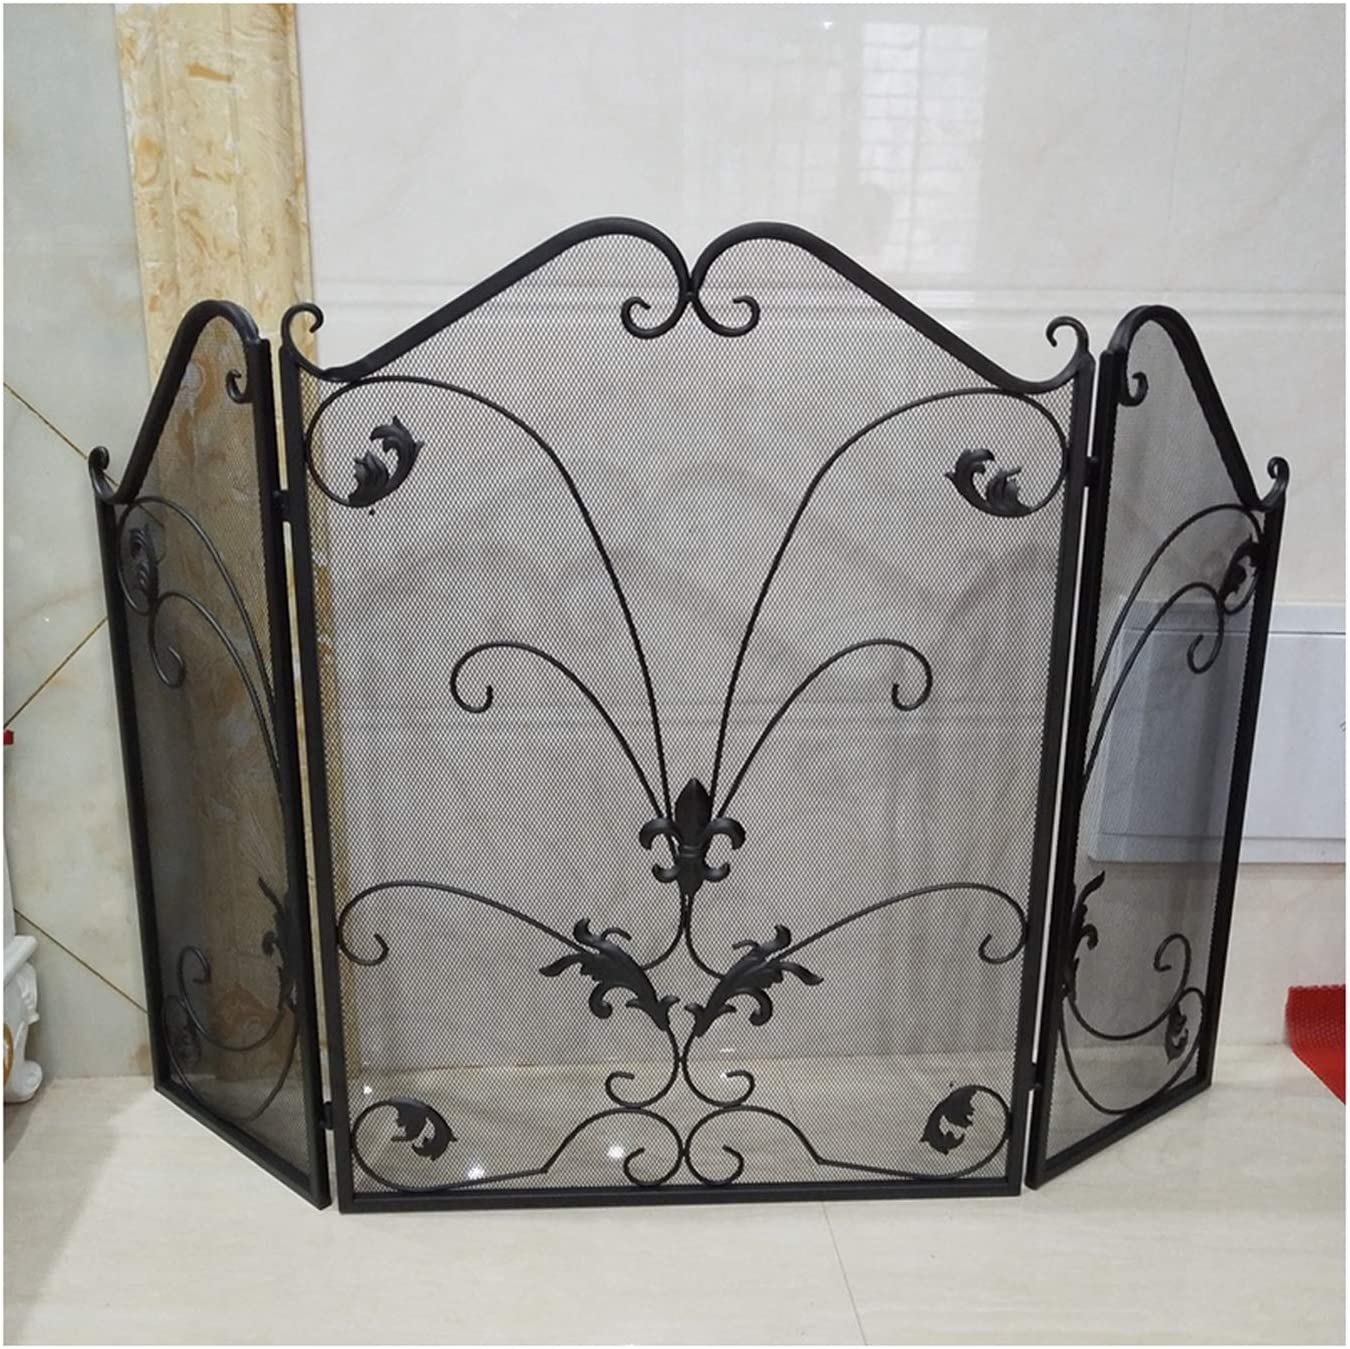 Spark Protection 3 Direct stock Soldering discount Panel Wrought Fireplace Iron Leaves Screen Wr